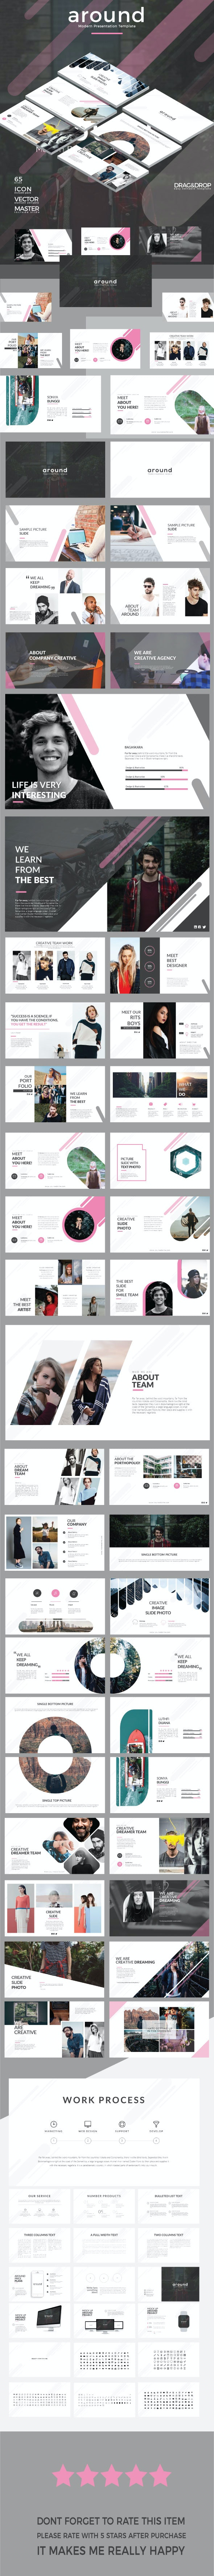 around - modern Google Slide Template - Google Slides Presentation Templates